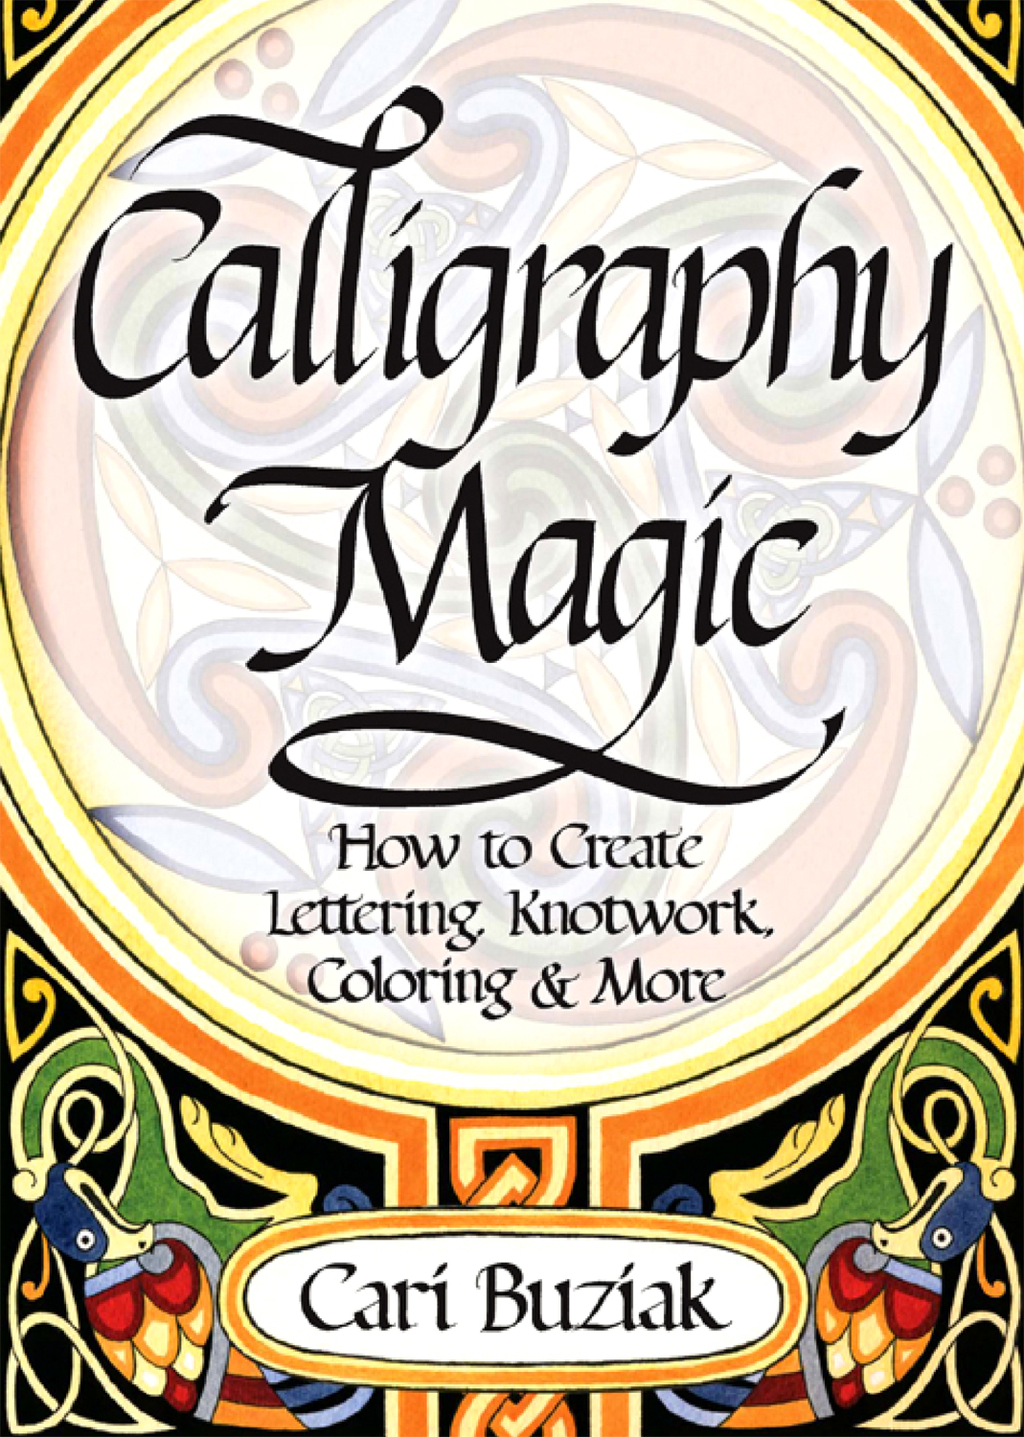 Calligraphy Magic How to Create Lettering,  Knotwork,  Coloring and More